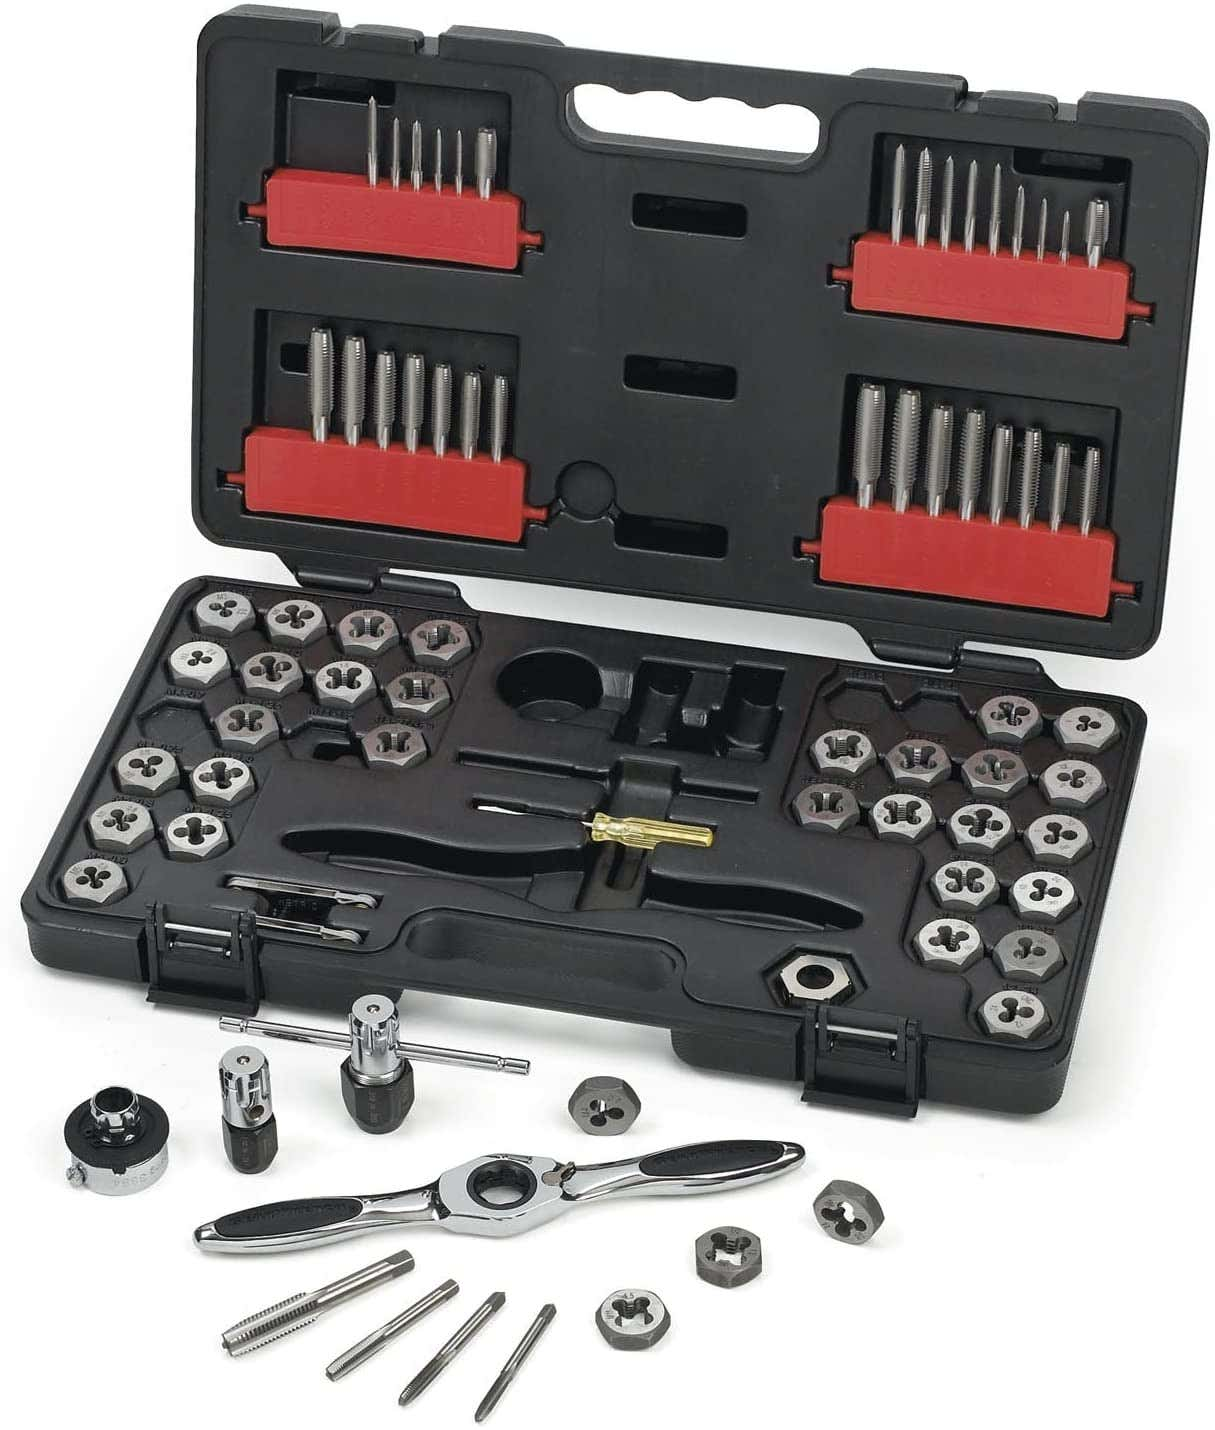 GearWrench 75-Piece Tap and Die Tool Set